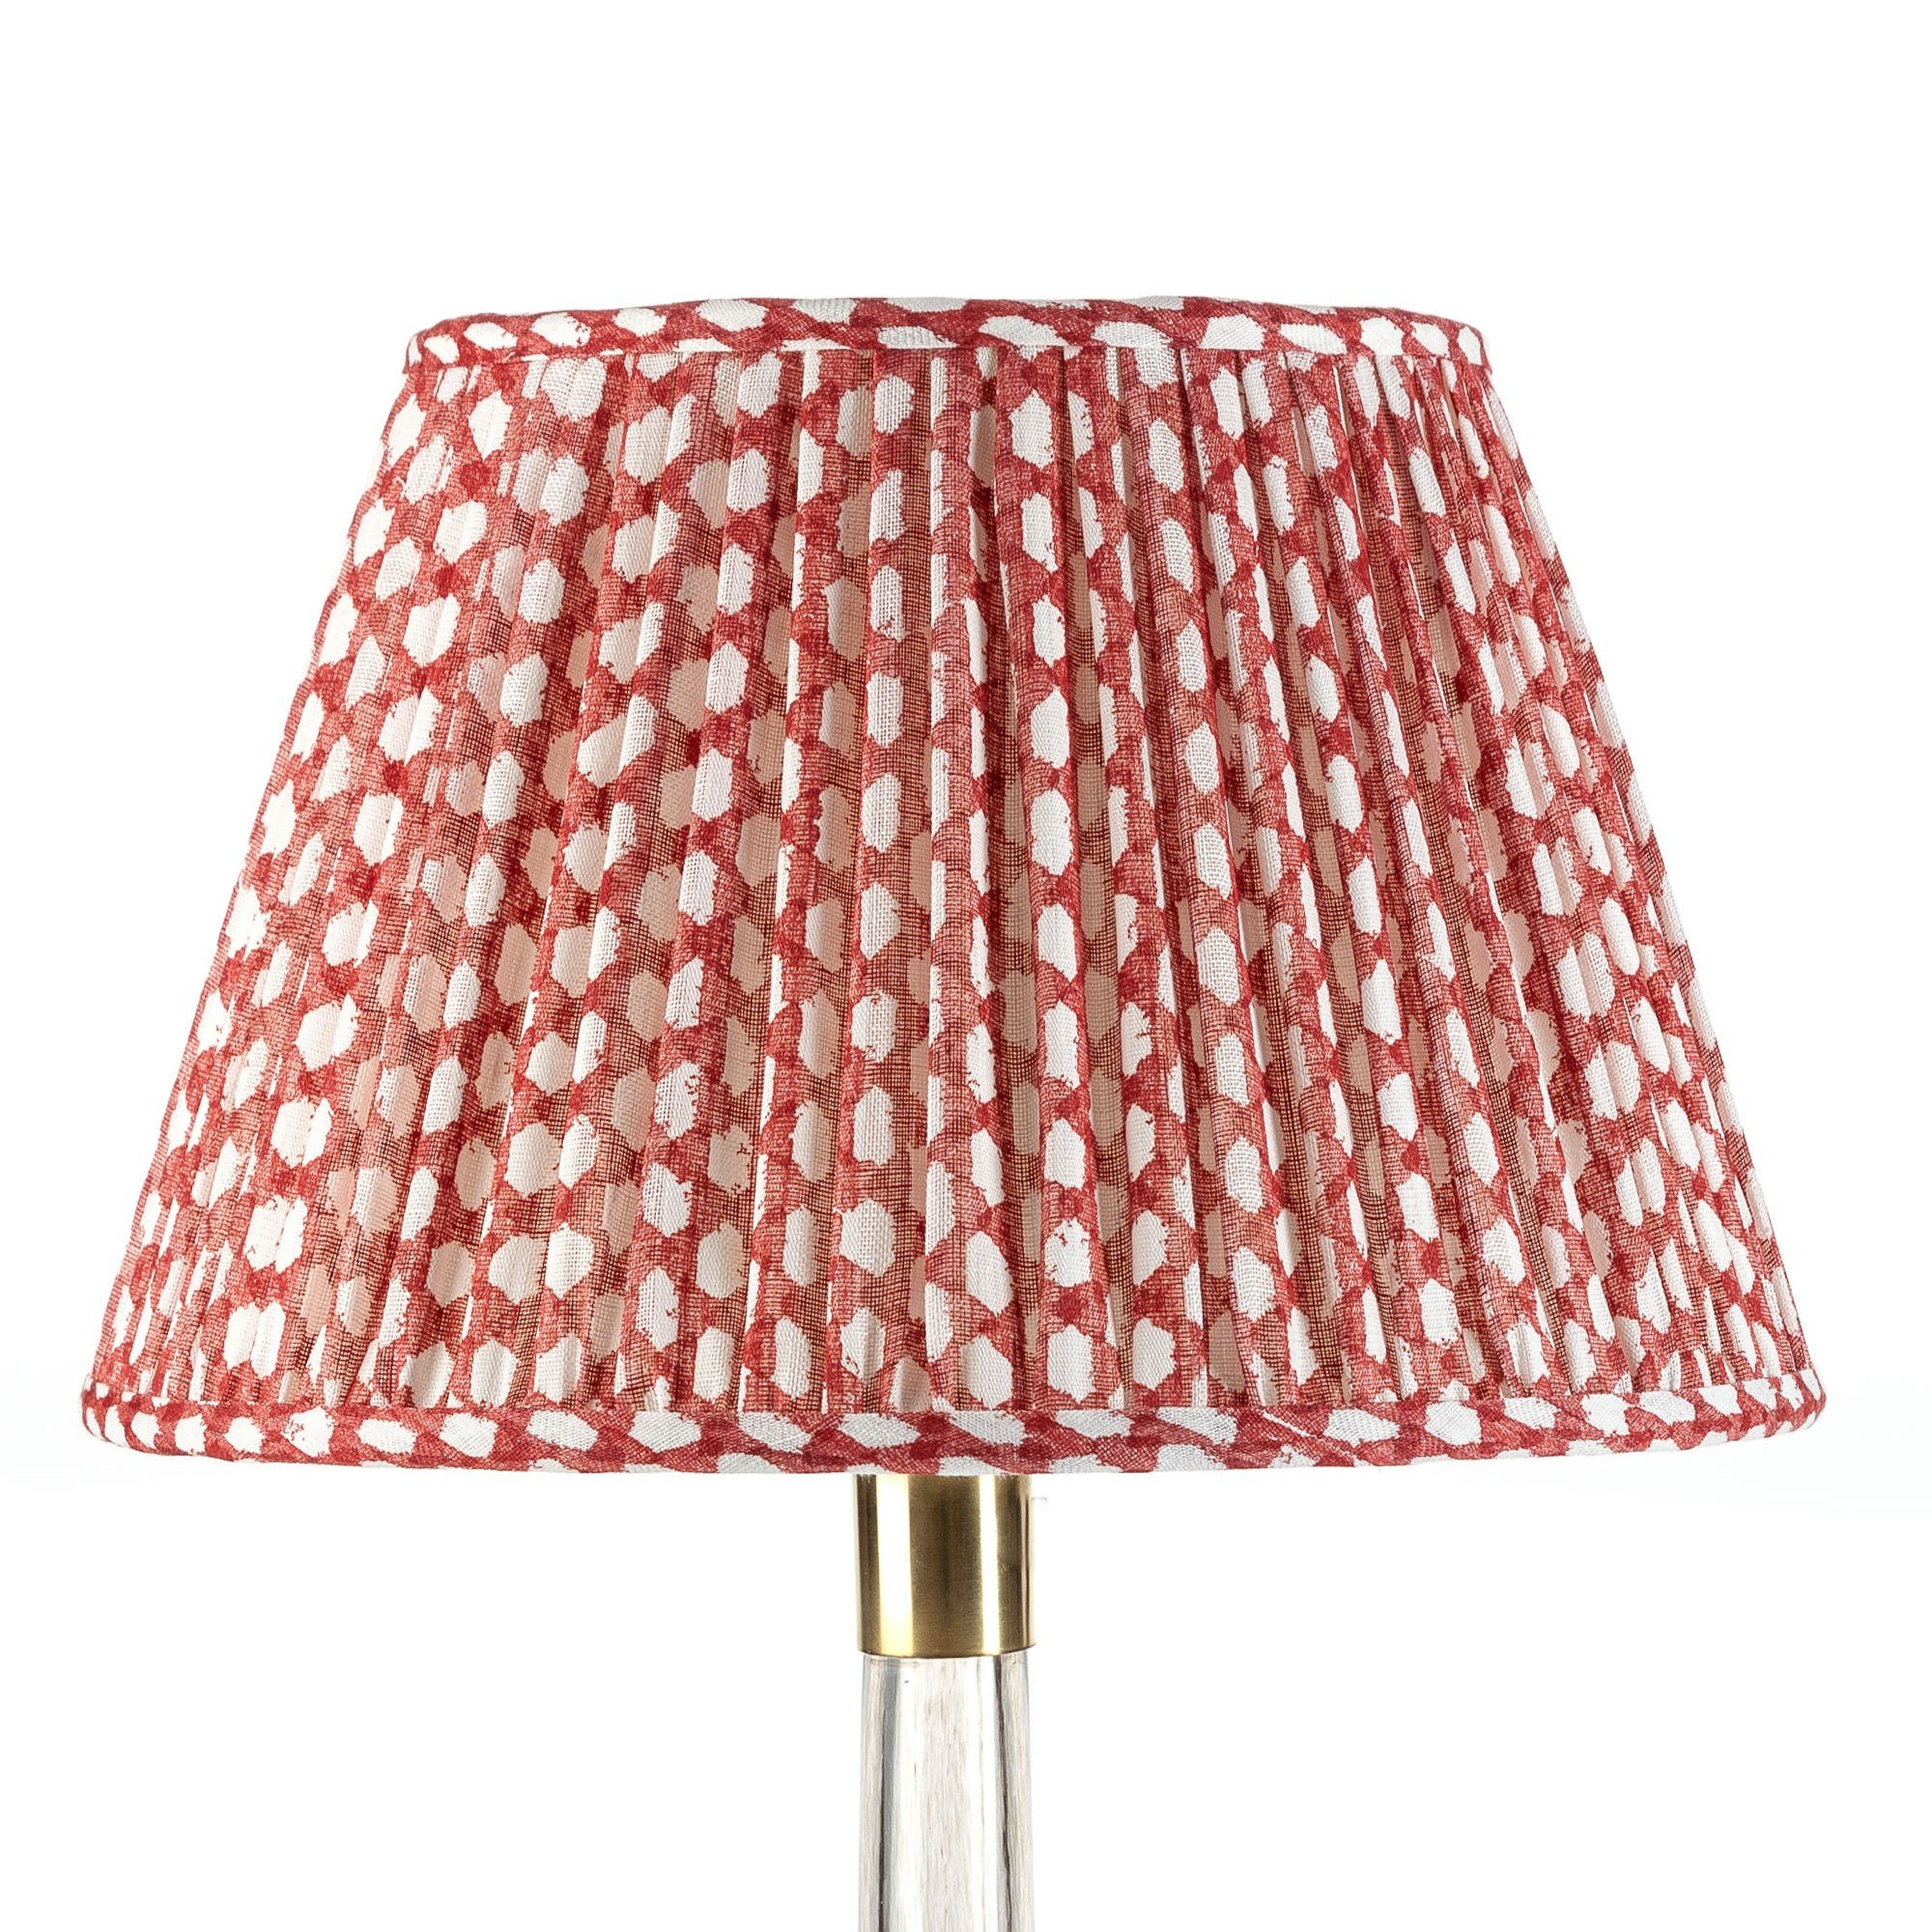 Empire Gathered Lampshade in Red Wicker 022-1